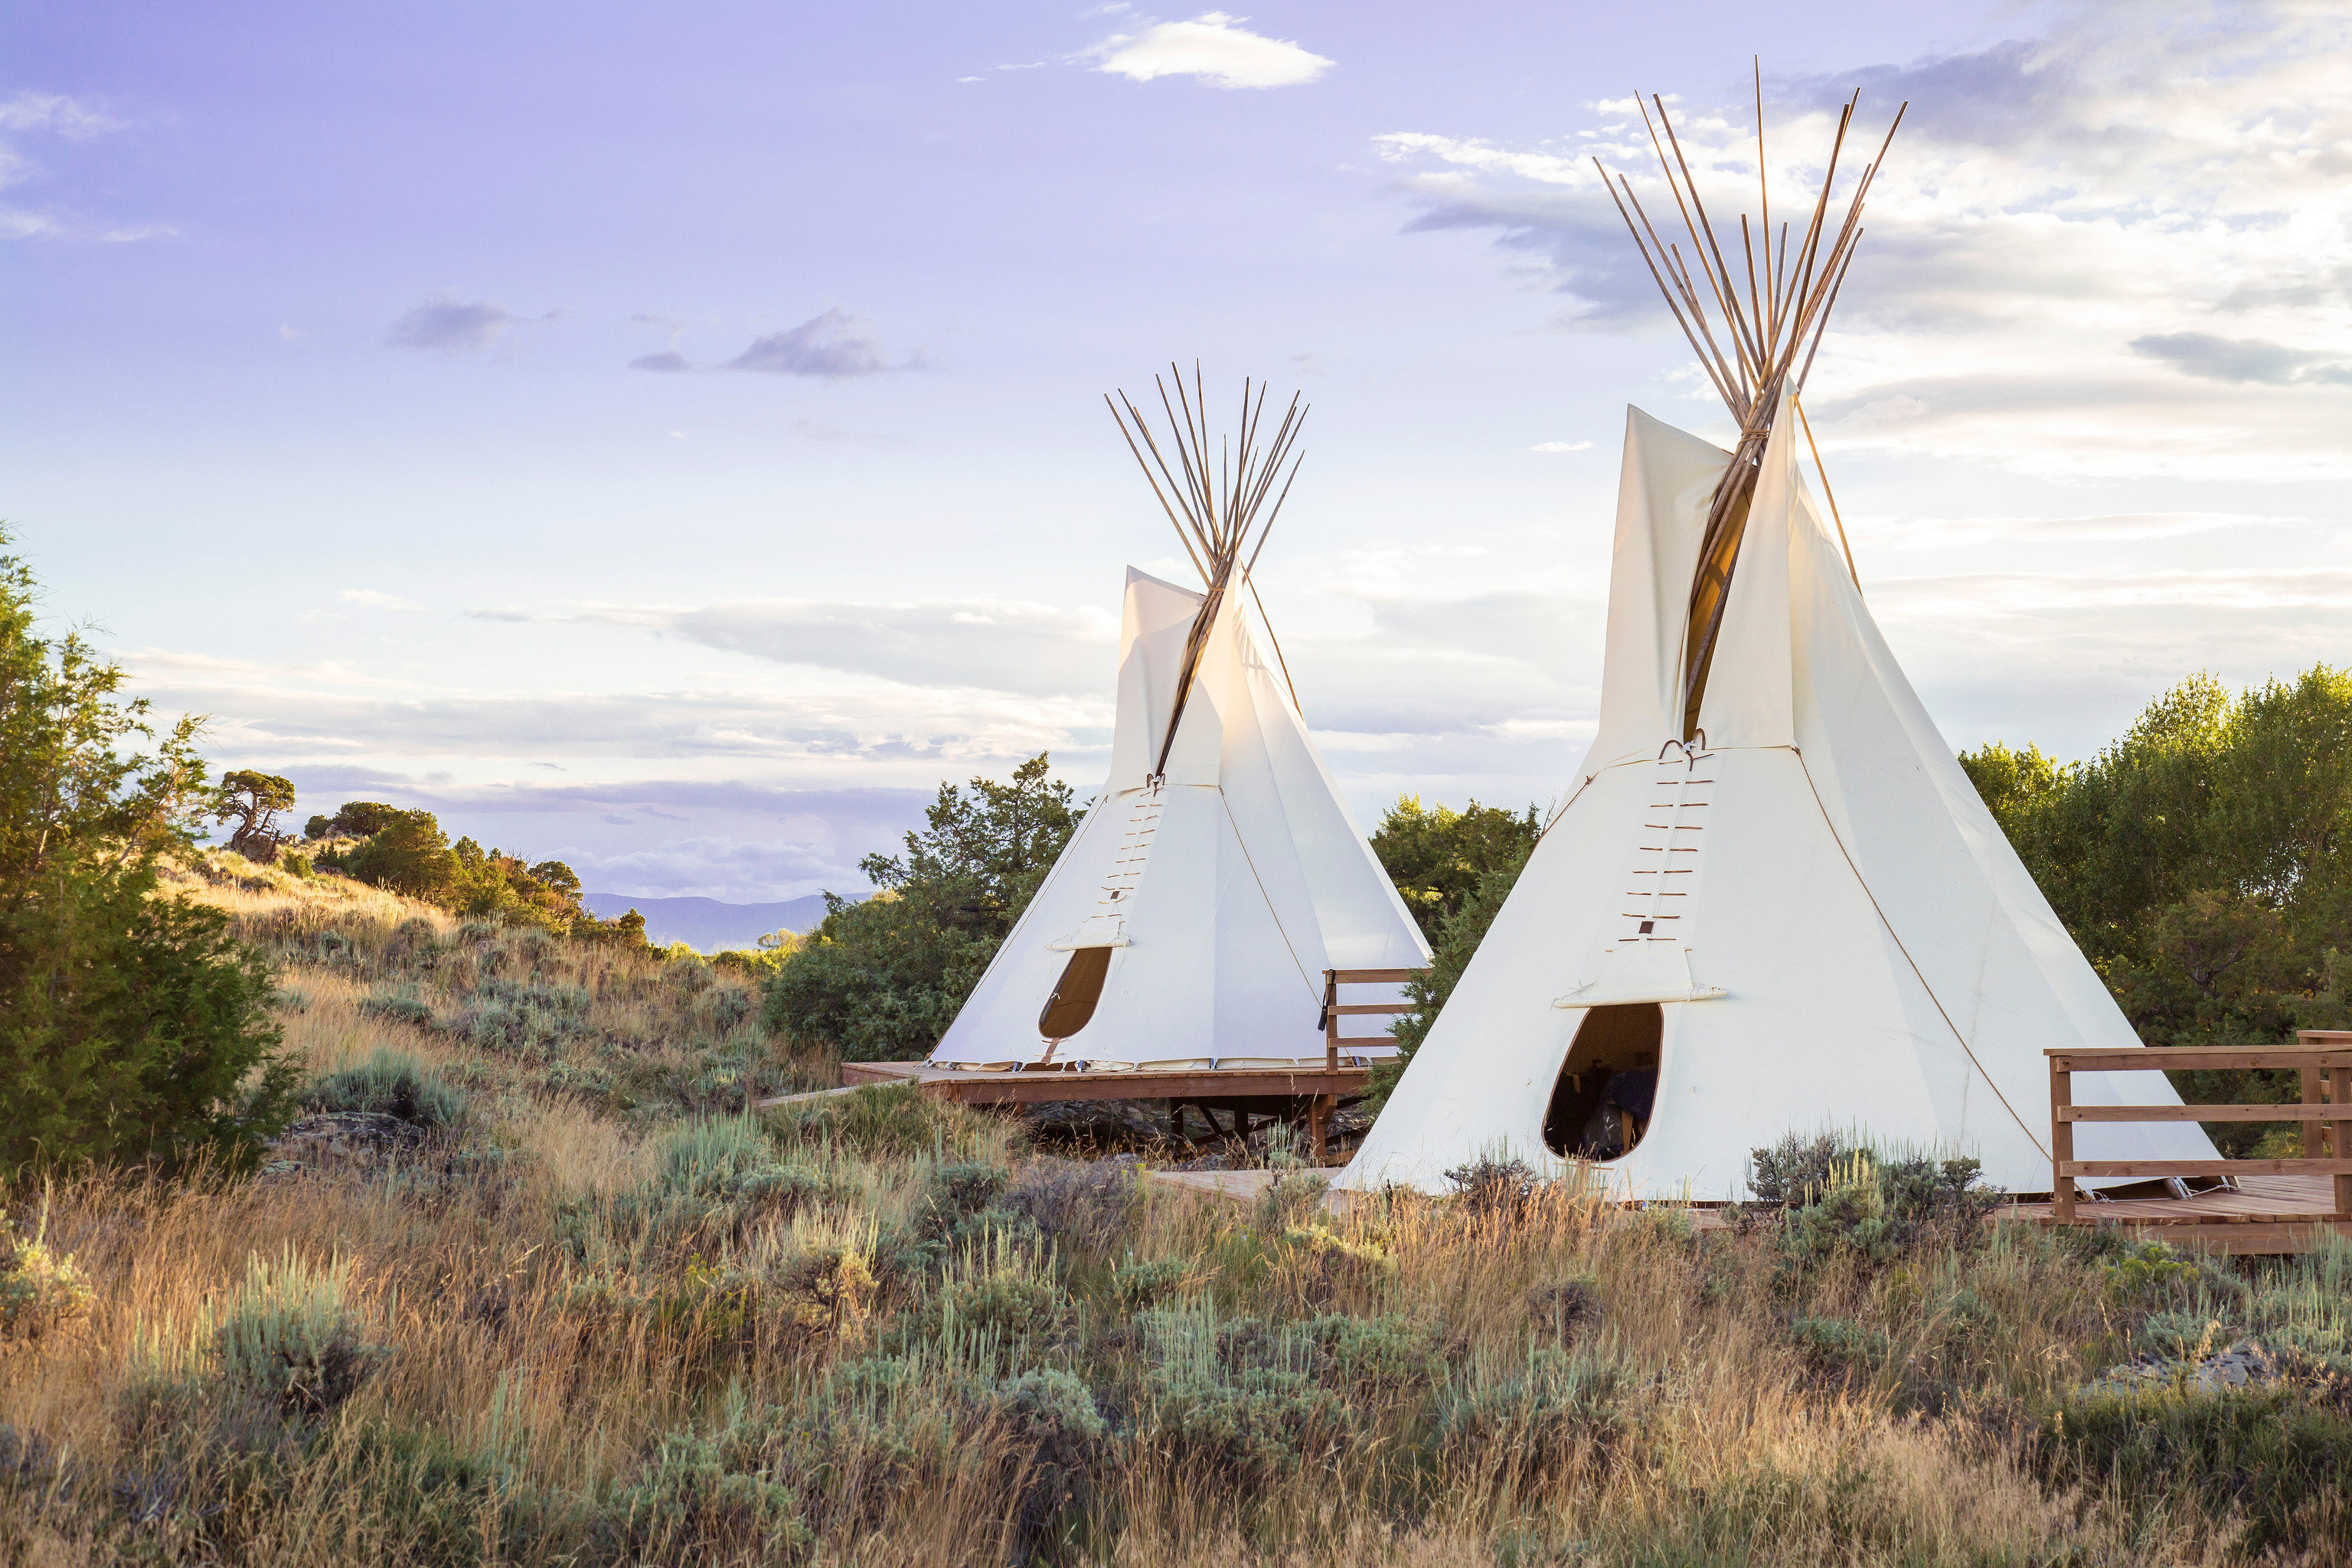 Outdoors + Adventure Trip Ideas tepee building grass sky windmill landmark field rural area mill tower monument wind